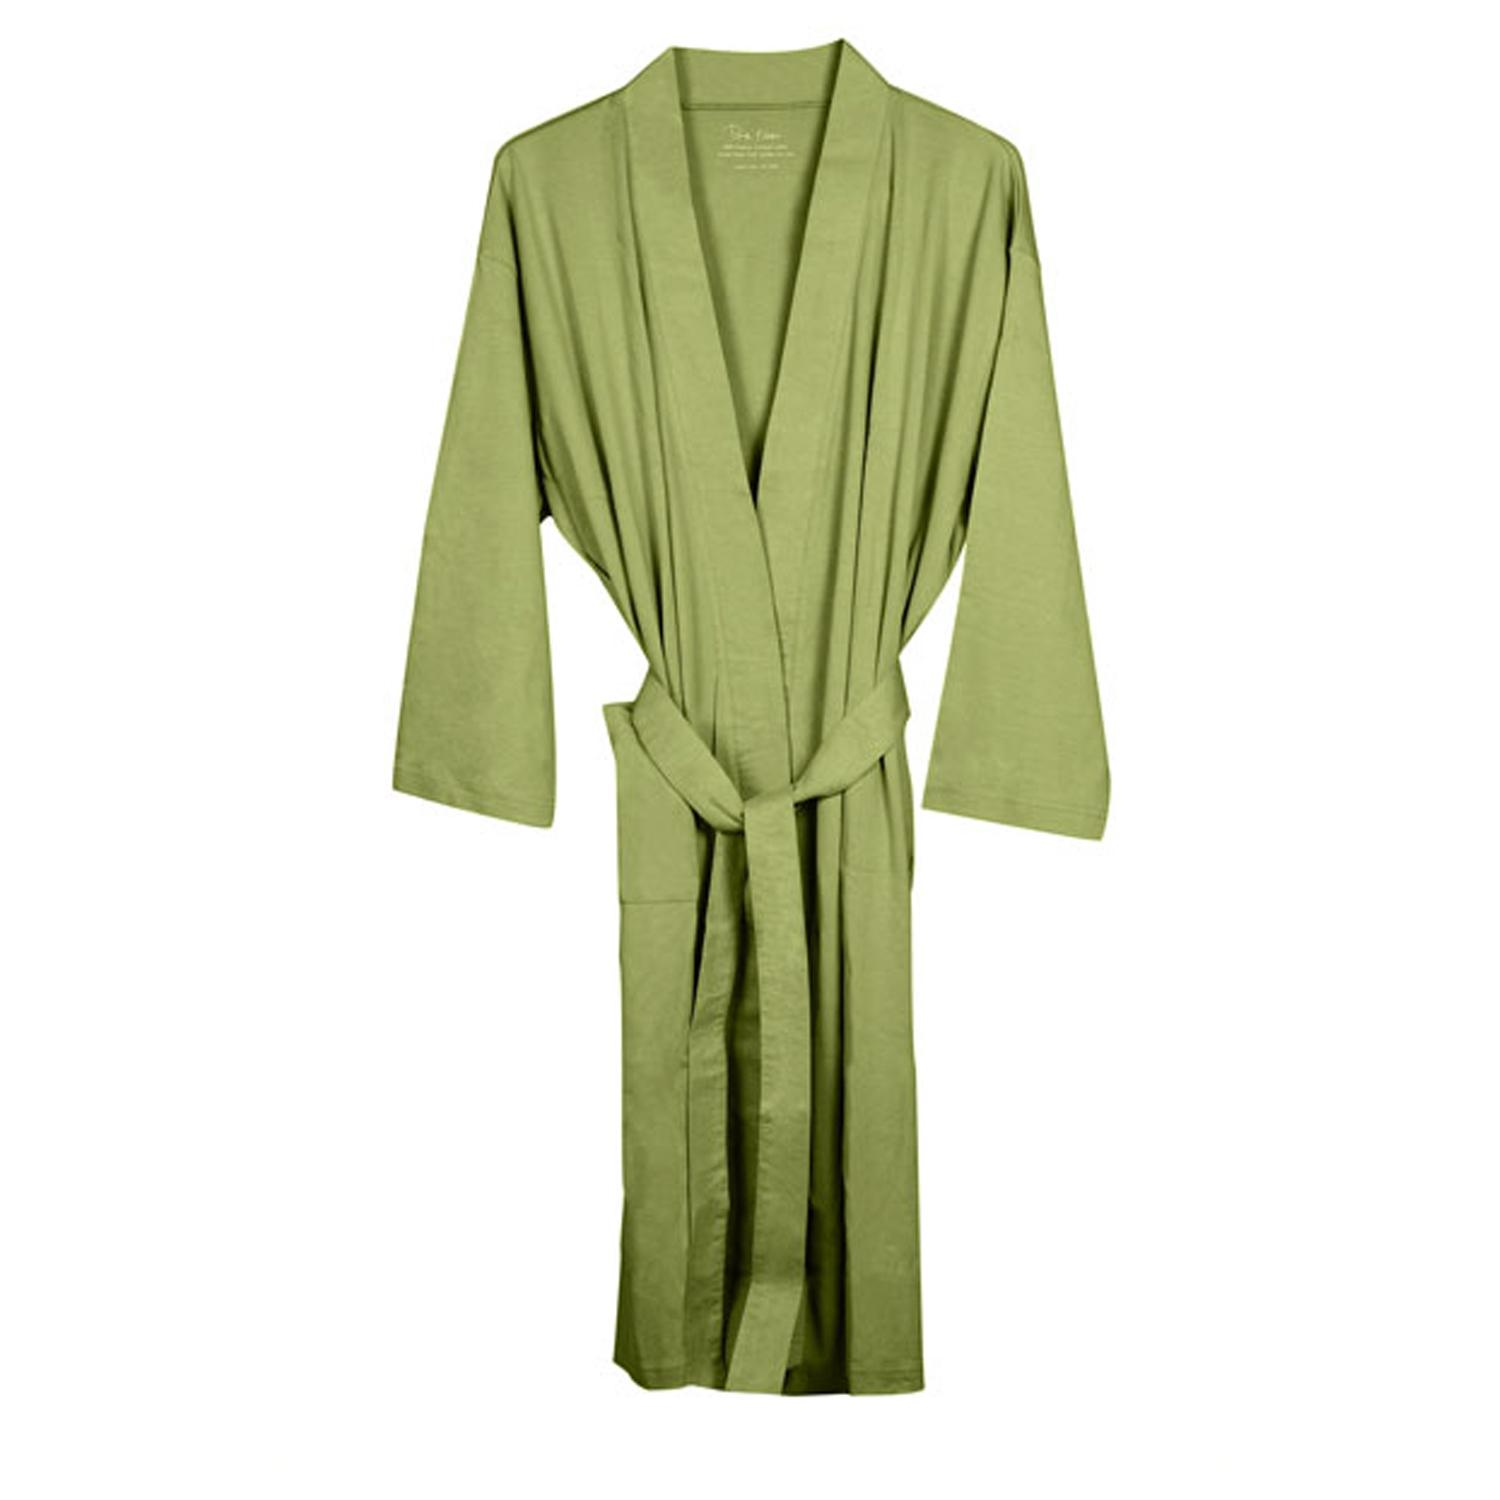 Womens Sage Organic Cotton Bath Robe - Free Shipping -8293